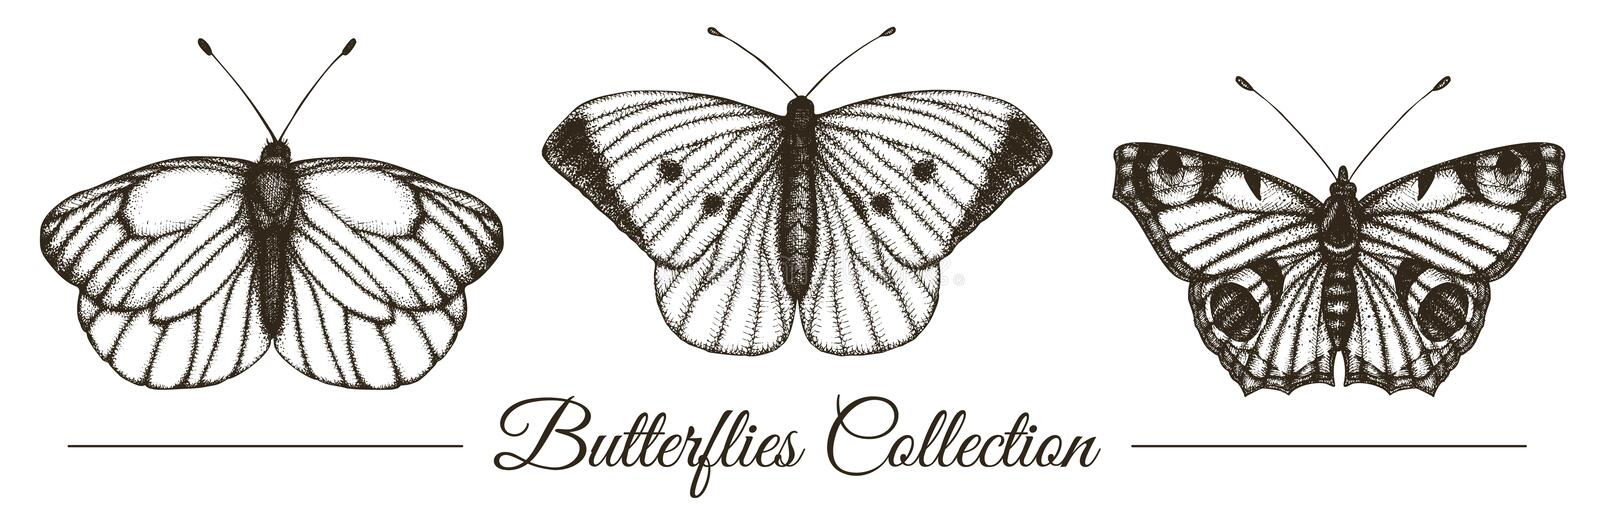 Vector set of hand drawn black and white butterflies. Engraving retro illustration. Realistic insects isolated on white background. Detailed graphic drawing in vector illustration